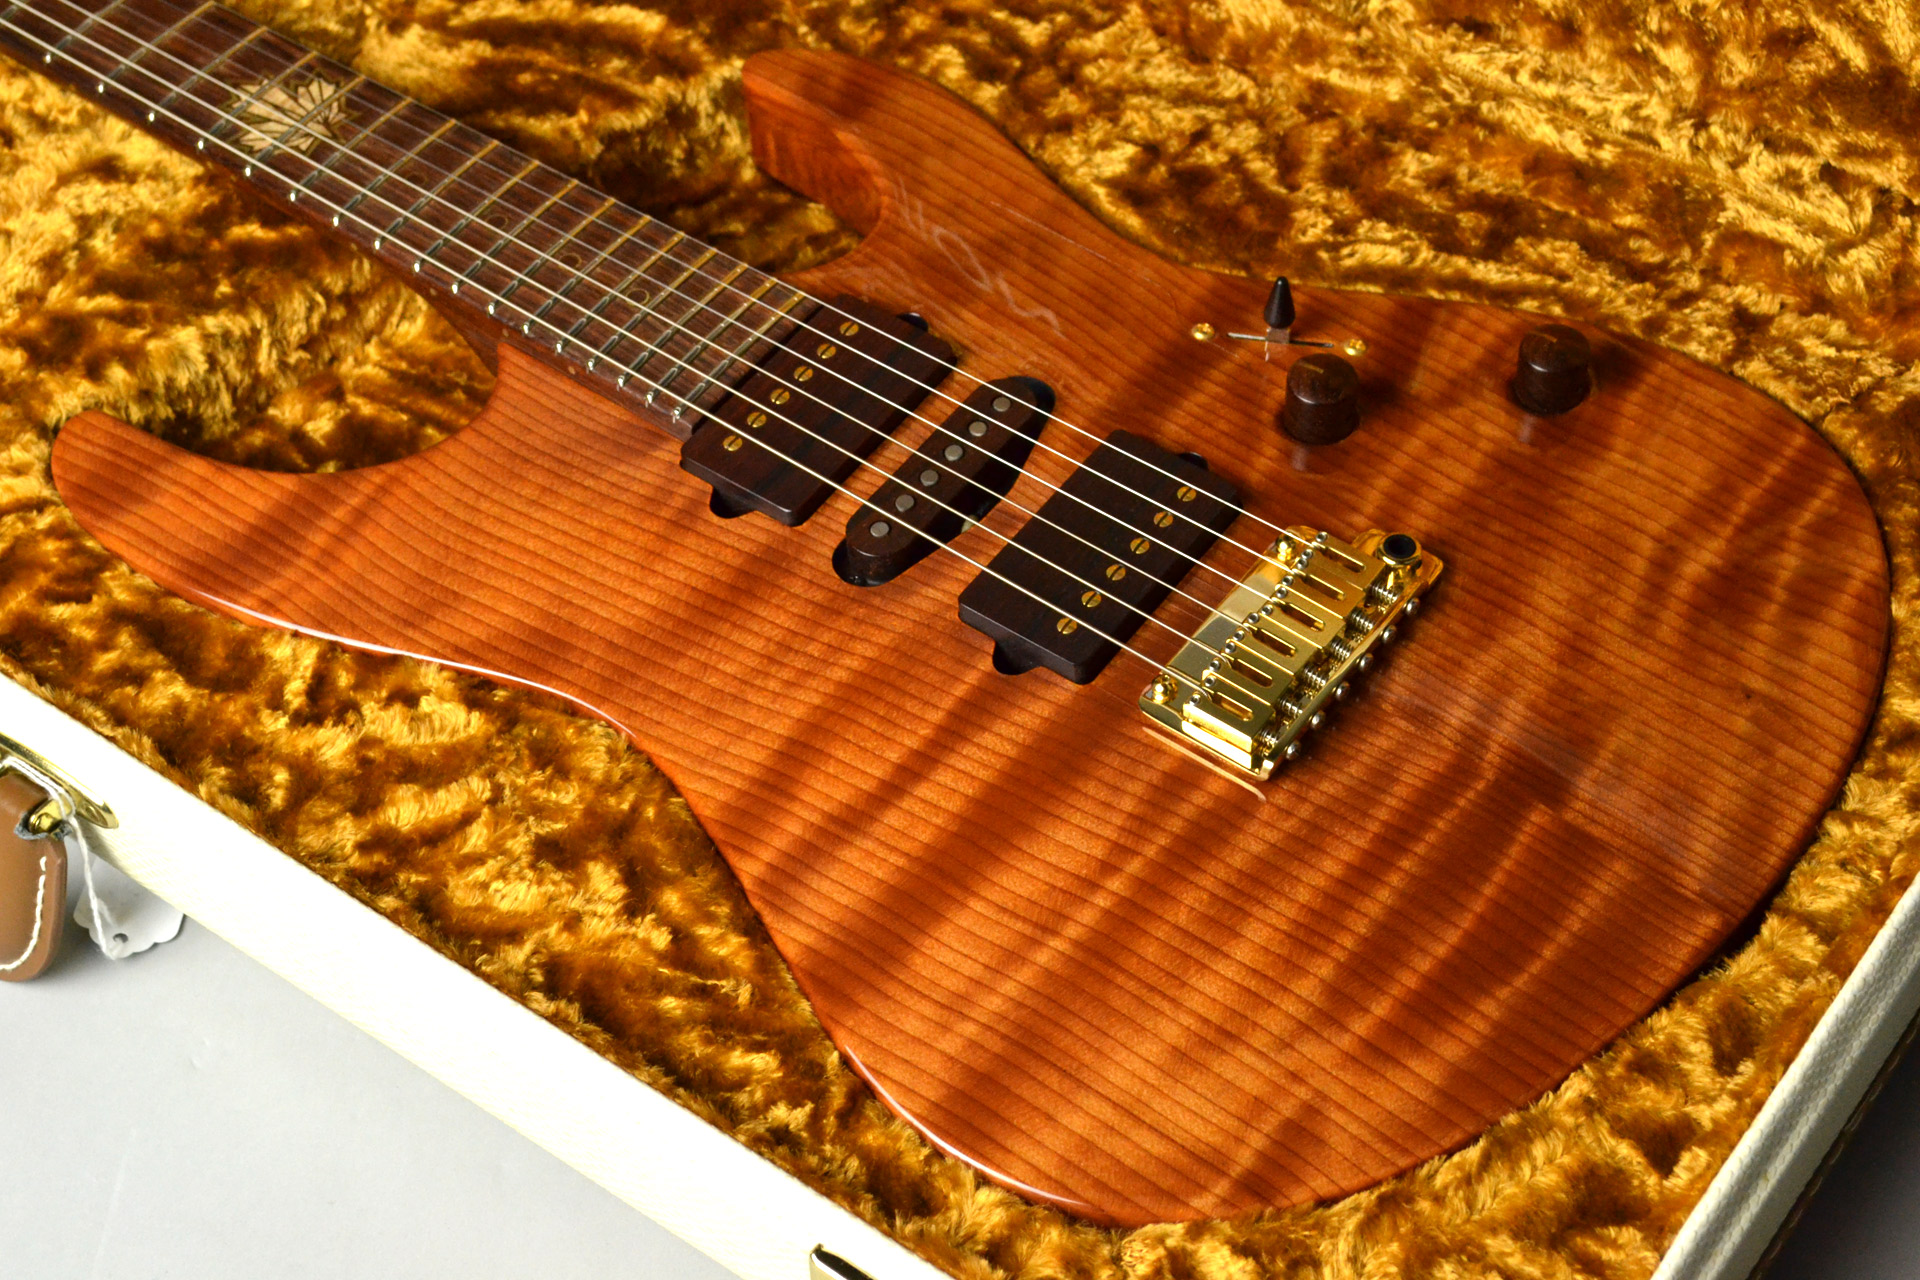 Modern Carved Top Redwood 2015 Collection Limitedのボディトップ-アップ画像